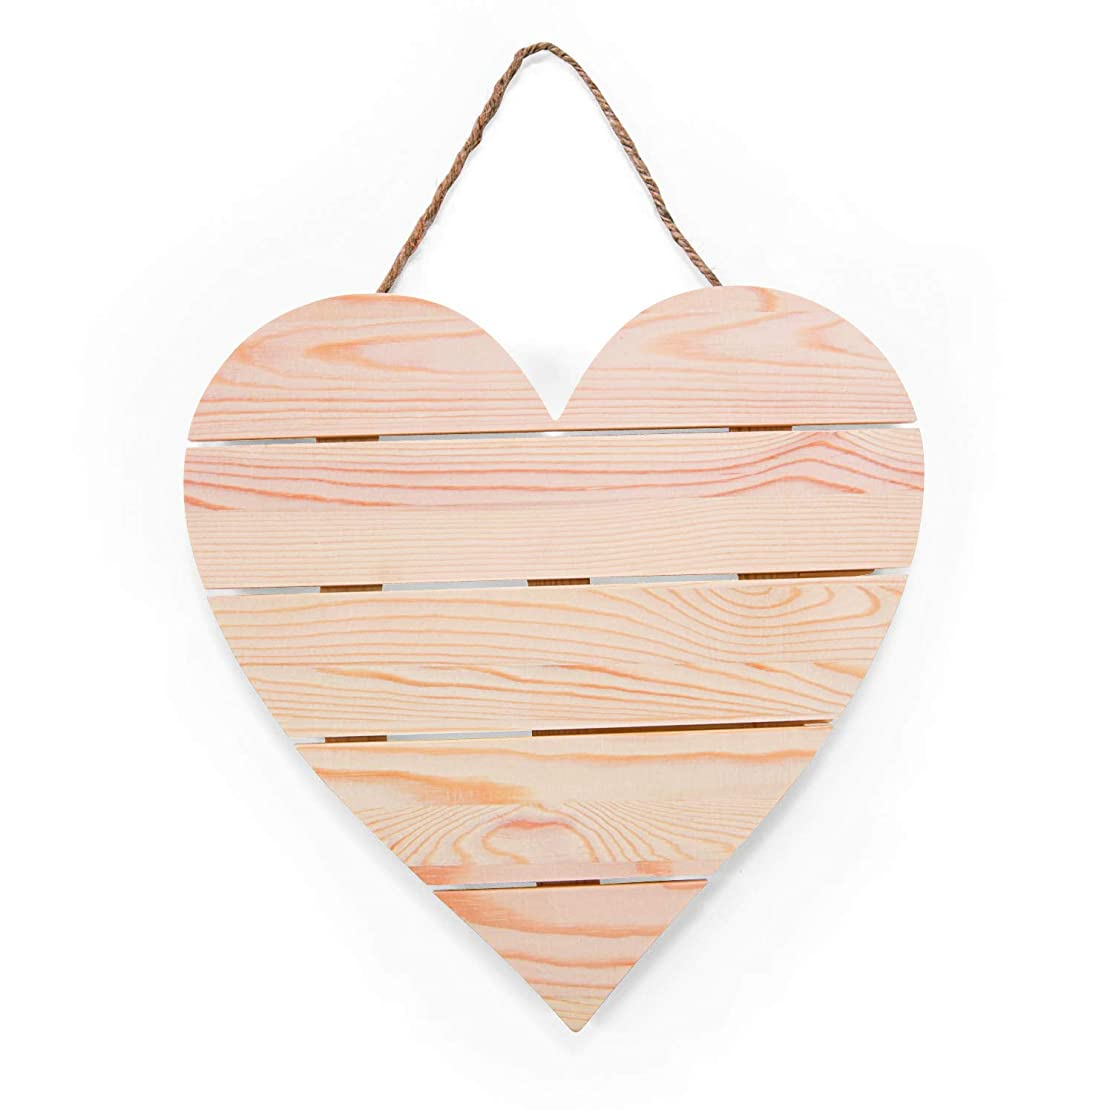 DIY Wood Heart Plank Sign with Jute Cord for Hanging-Kids Crafts-Summer Activities-Home Decor (1 sign)- 12 Inches